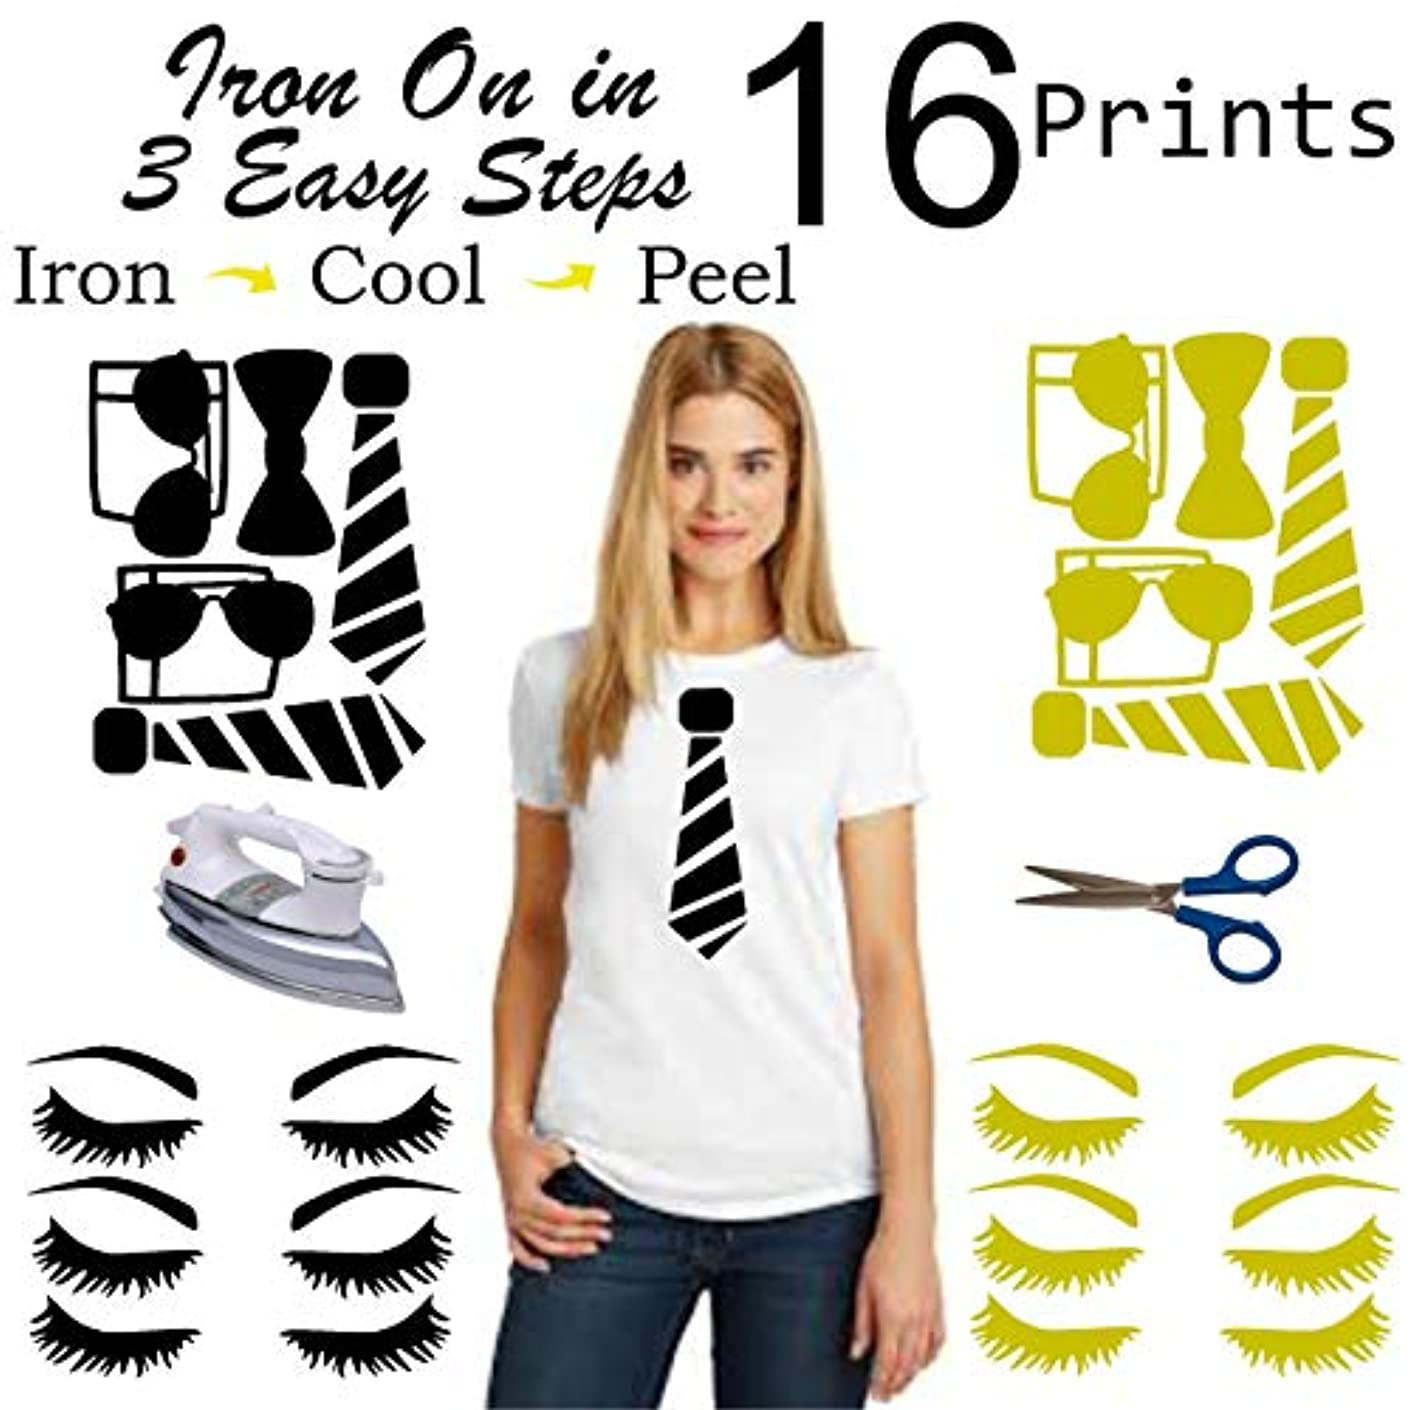 Optical Illusion Shirt for Men, Women Or Kids - 16 Prints Iron On Heat Transfer Vinyl | Easy To Use | Trendy | Savings